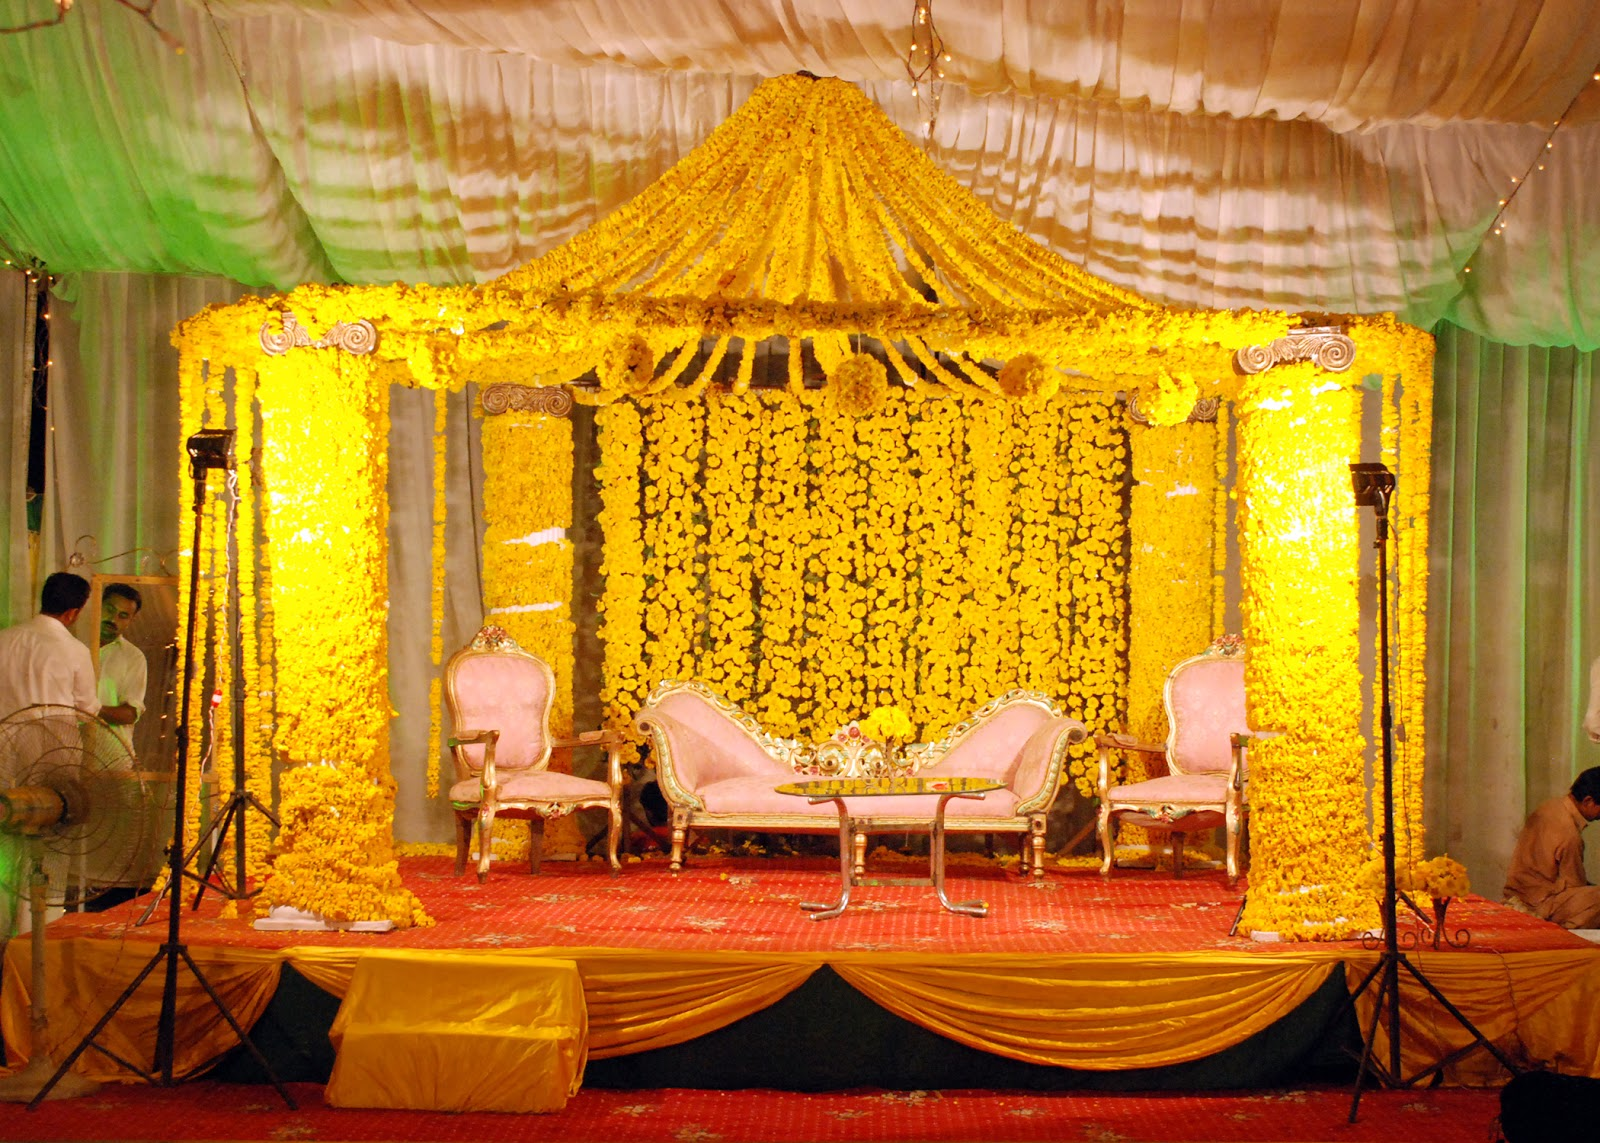 Best mehndi stage decoration ideas designs 2015 images hd for New home decor ideas 2015